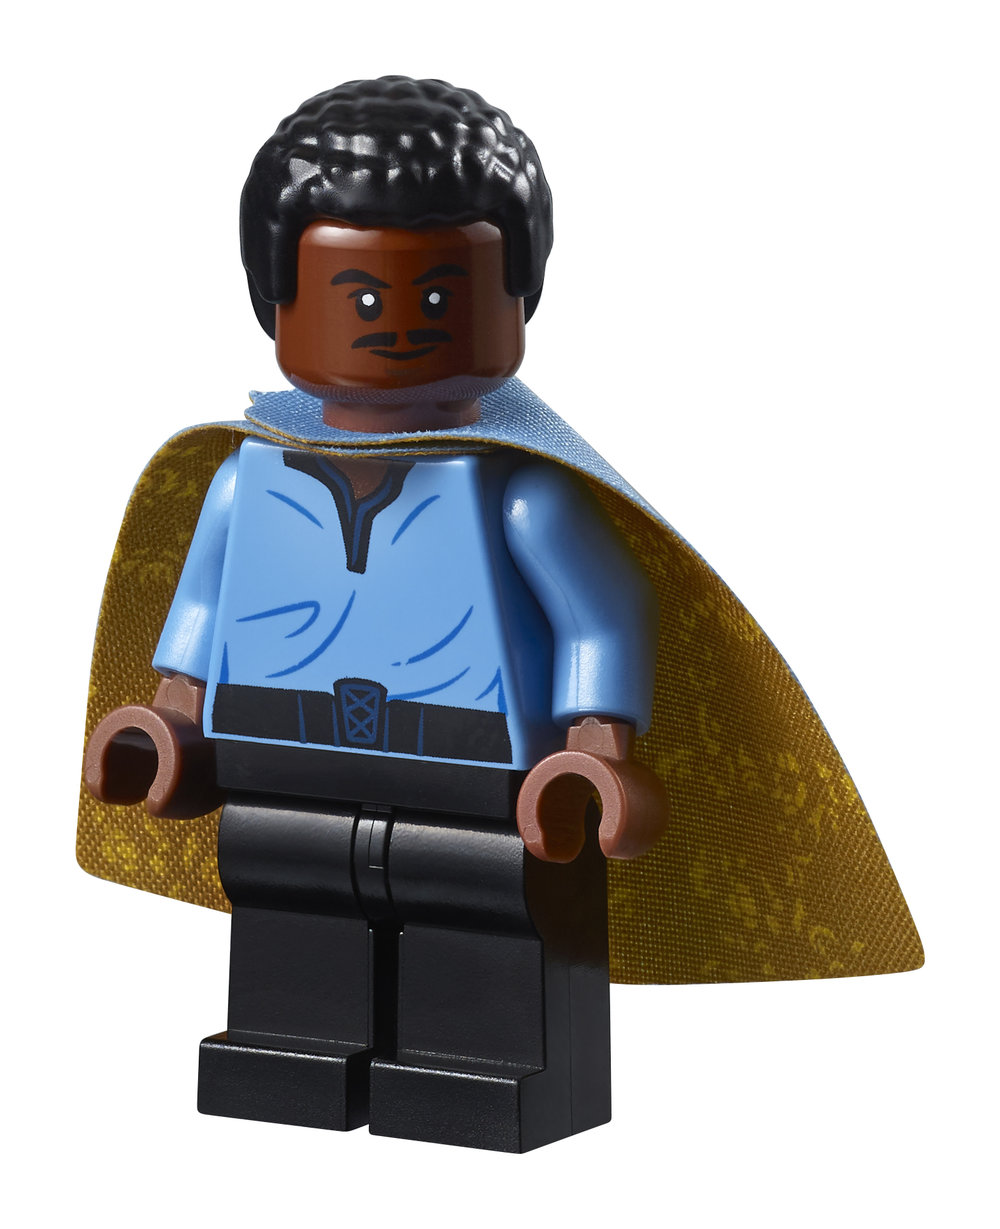 75222_Top_Panel_Minifigure_14.jpg